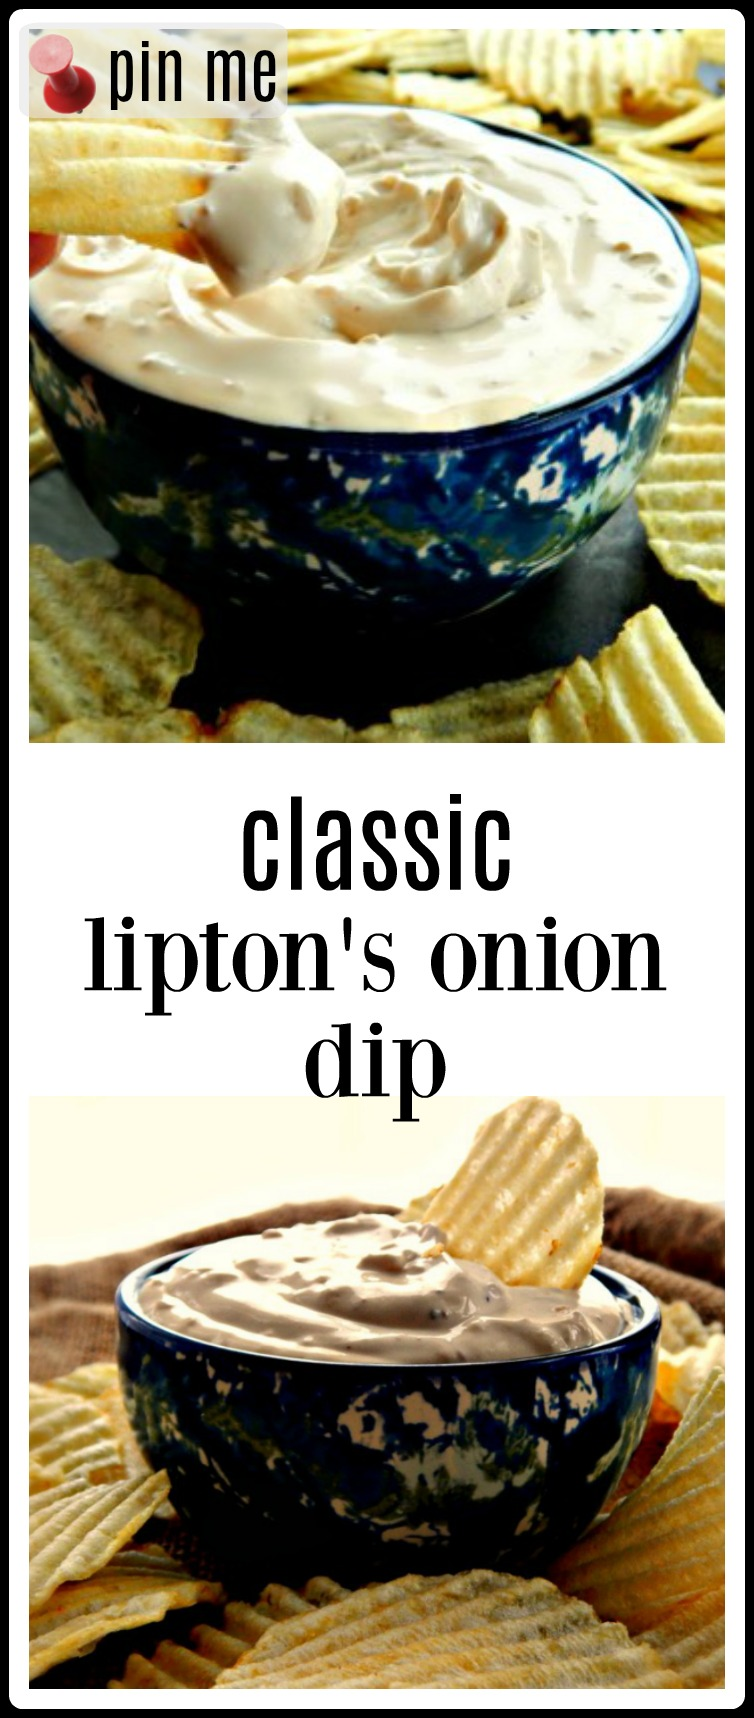 Did you grow up with this Classic Lipton's Onion Soup Dip made from Lipton's Onion Soup Mix and Sour Cream? I did, and we considered it a real treat at our house. After not trying it for literally decades I'm happy to say it was so much better than I expected! Much better than any dip in a carton from the store.